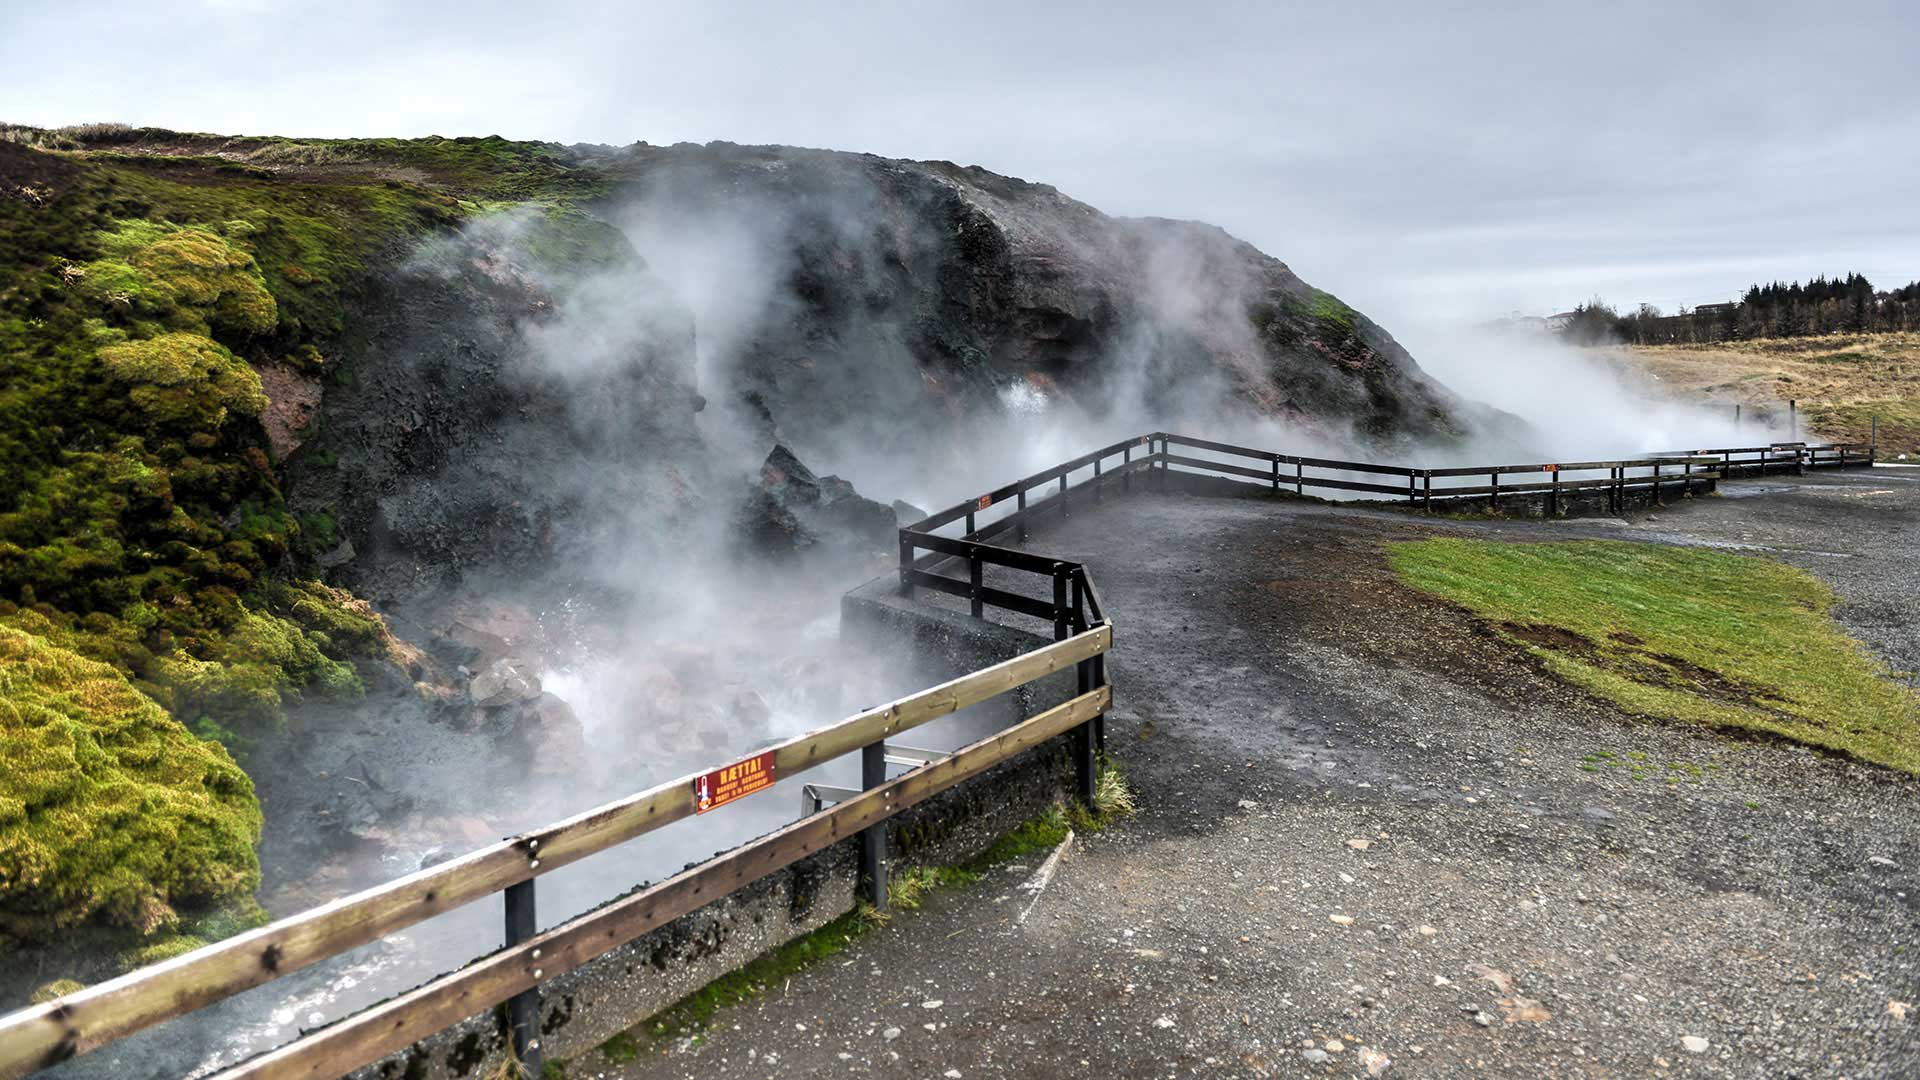 Deildartunguhver hot spring